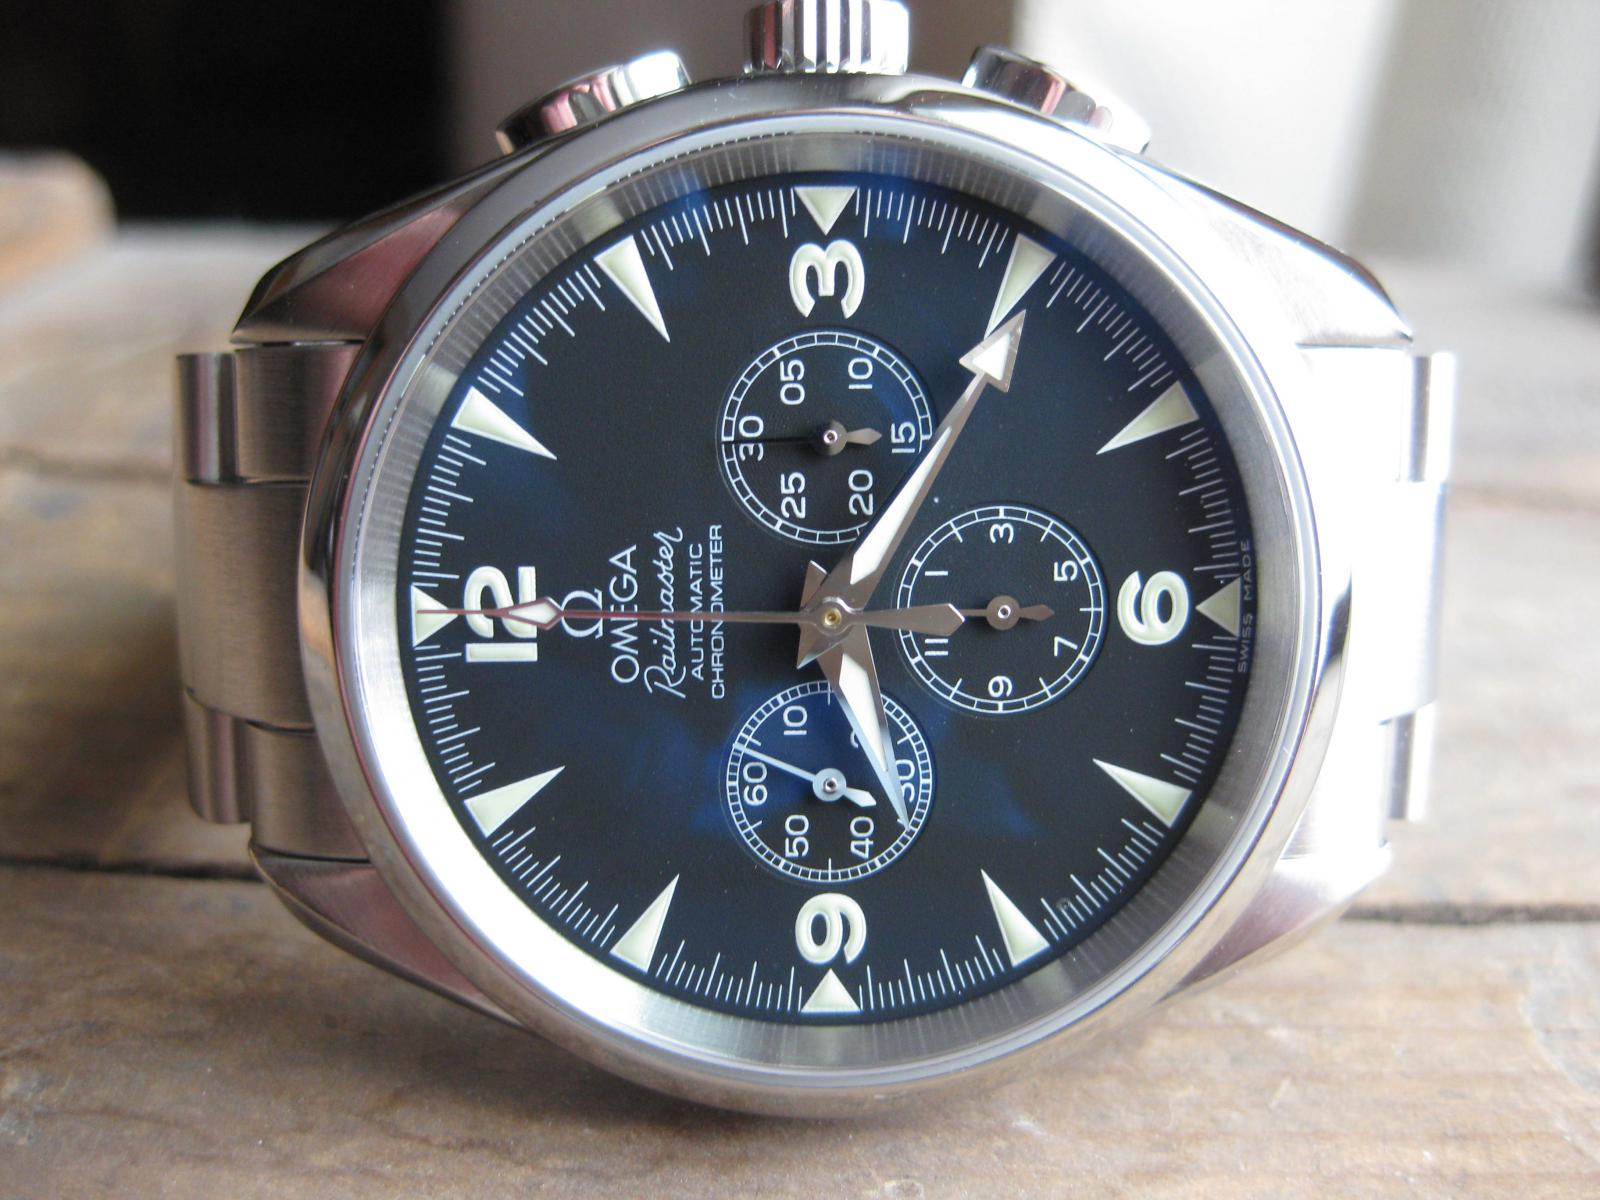 Lets see your Omega-img_1690.jpg